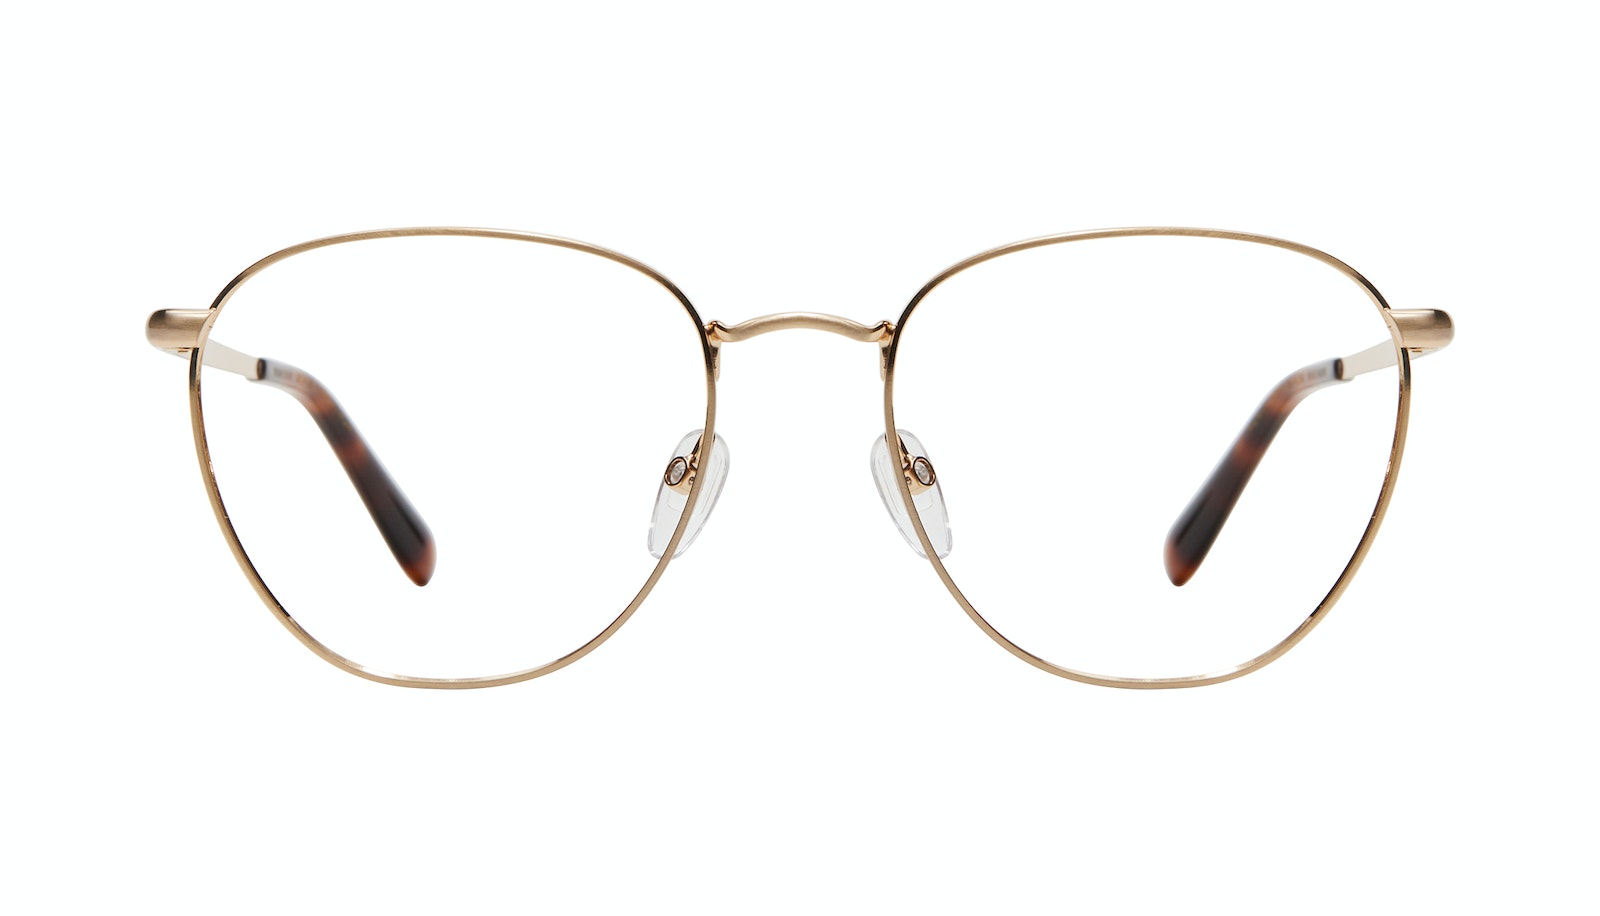 Affordable Fashion Glasses Round Eyeglasses Women Radiant Matte Gold